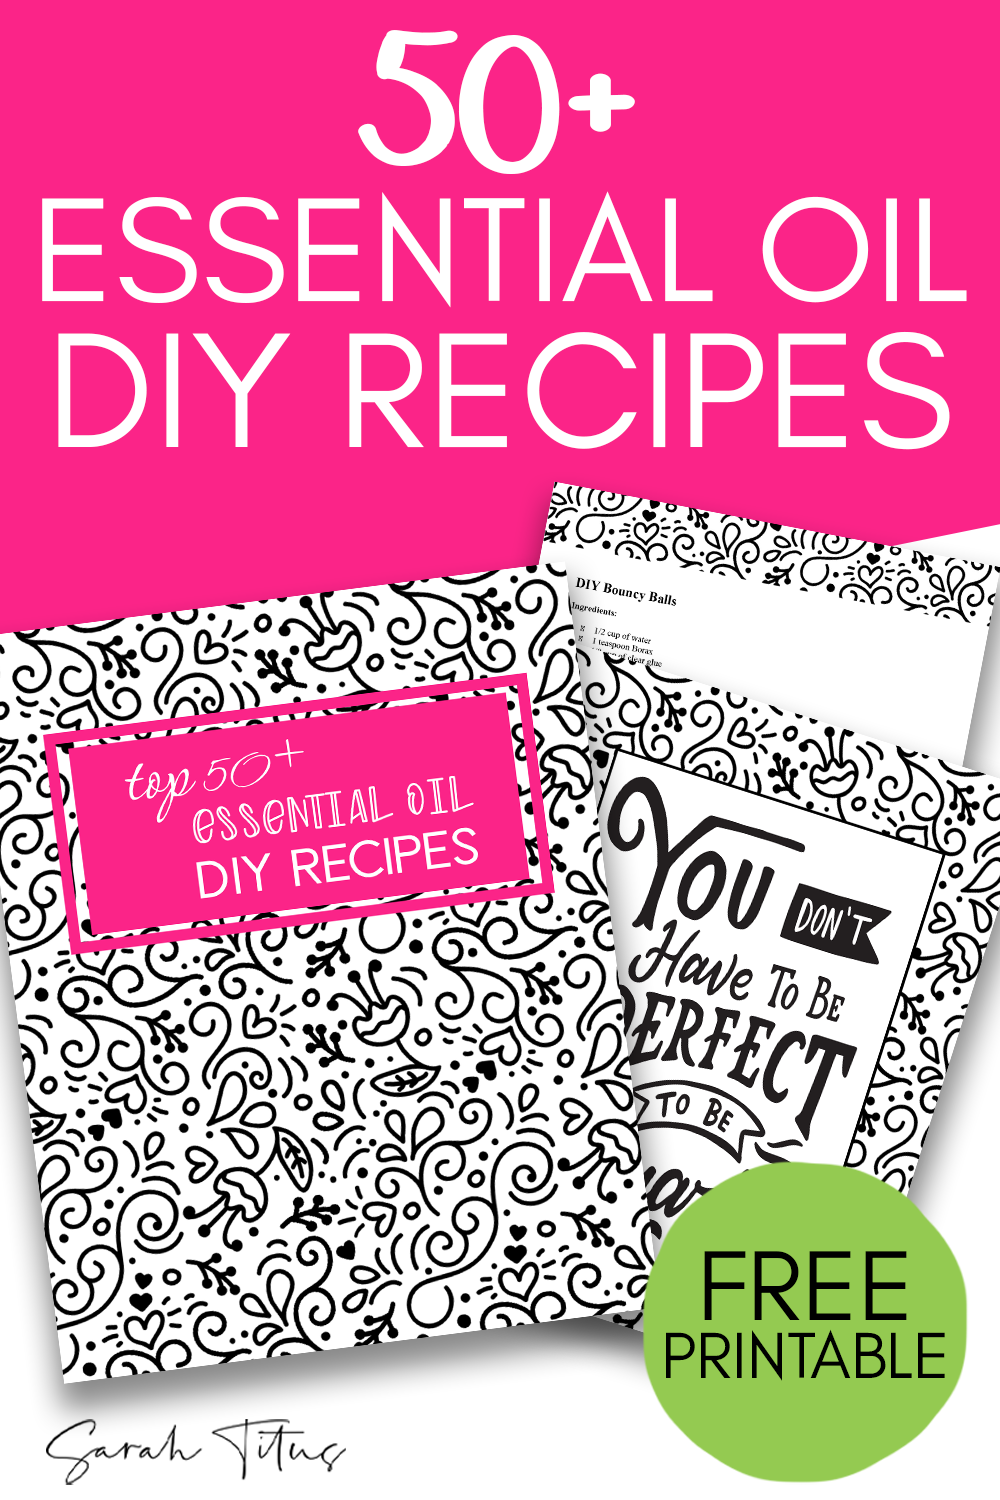 photo relating to Printable List of Essential Oils and Their Uses referred to as Greatest 50+ Imperative Oils Do-it-yourself Recipes Do-It-By yourself - Sarah